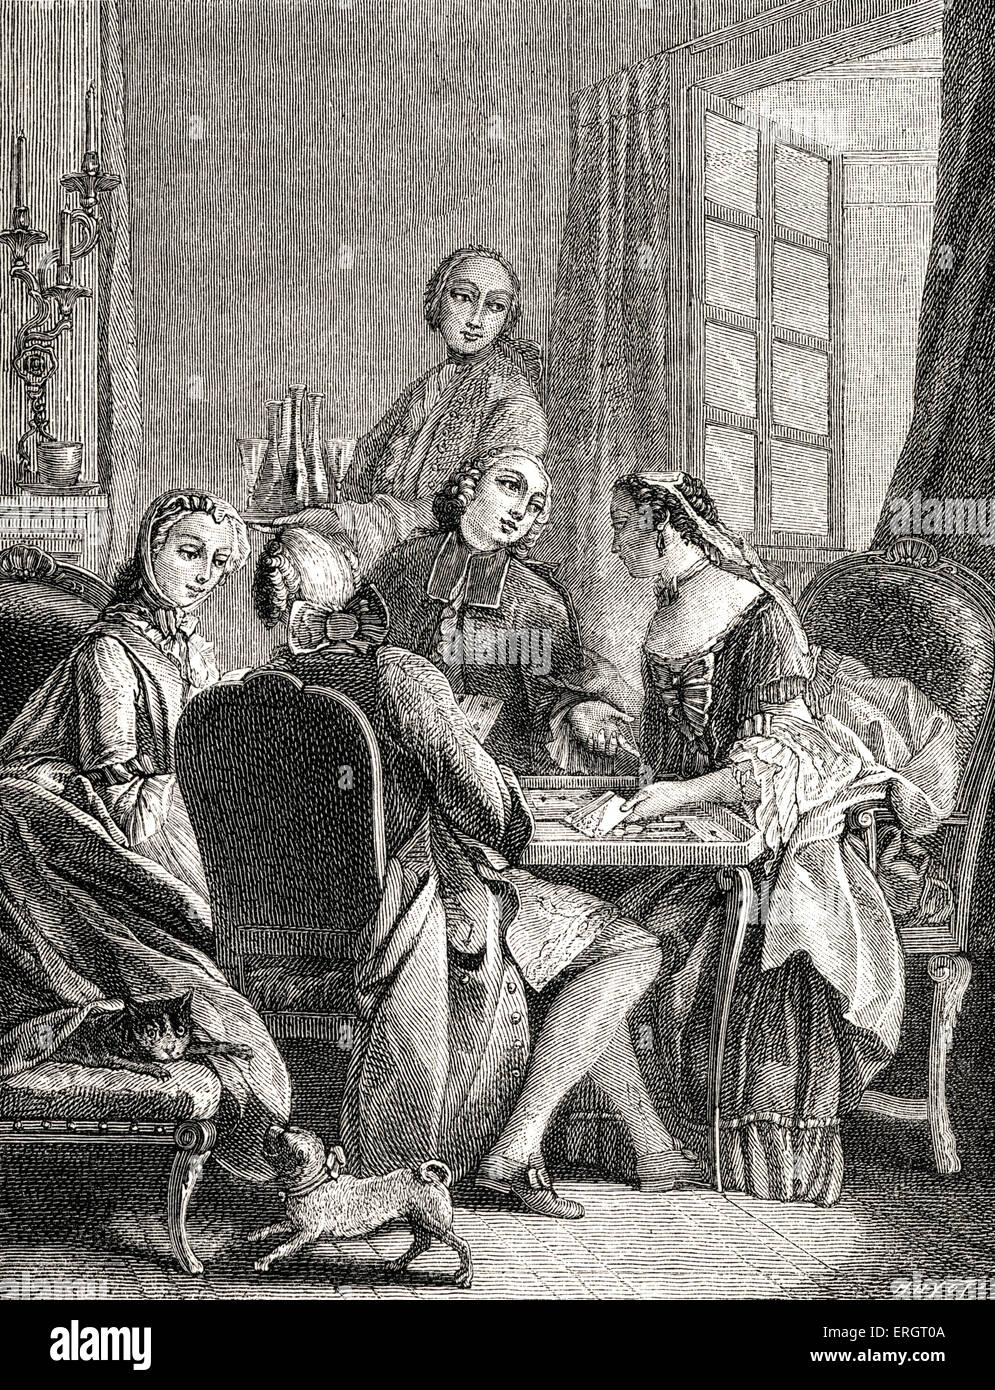 Daily life in French history: the aristocracy playing a game of Comet around a cards table.  Card games, gaming, - Stock Image